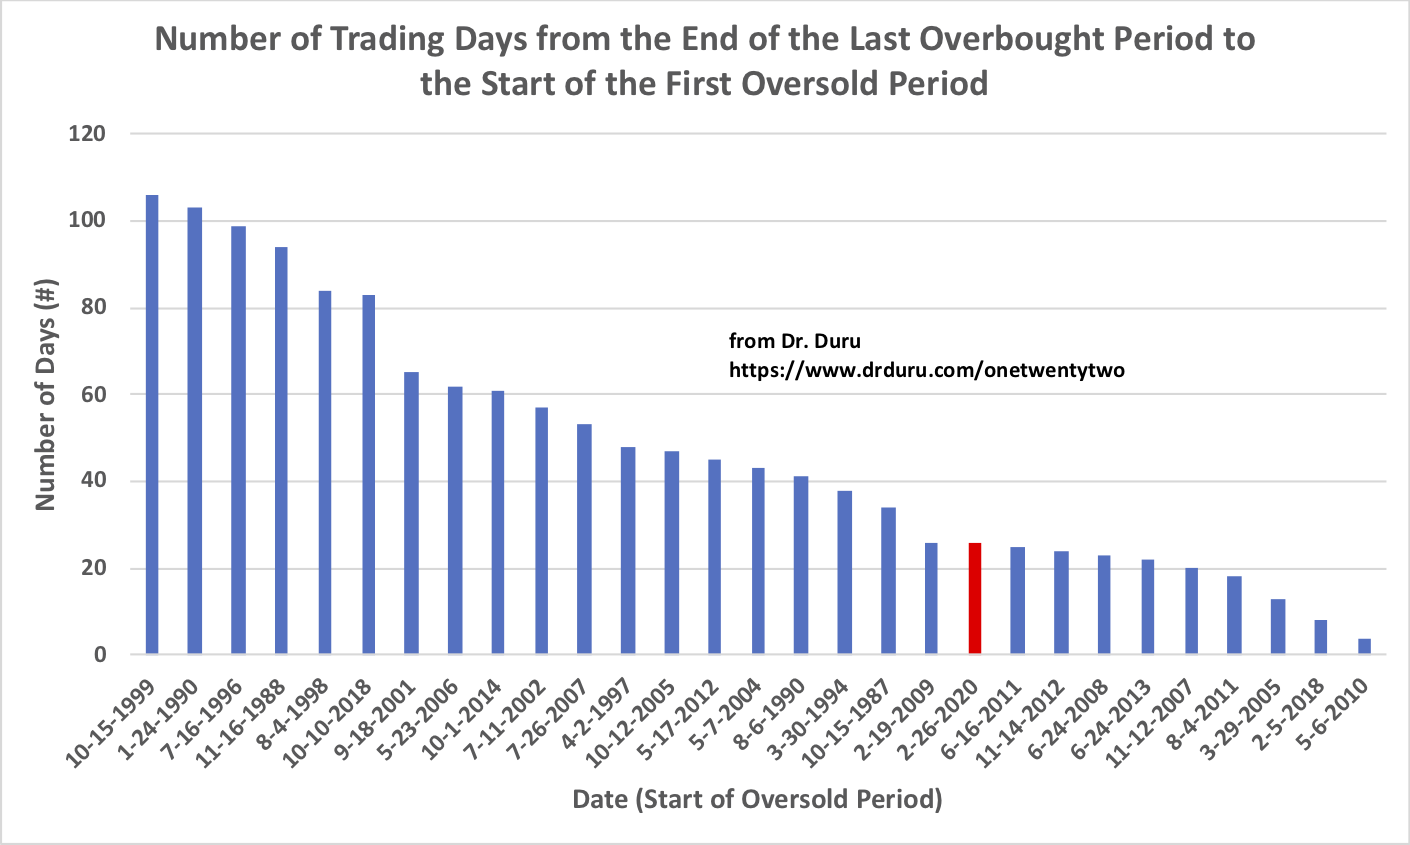 The current plunge into oversold trading conditions was fast, but recent periods have featured even faster slides. (Is the market subtly becoming more and more unstable?)